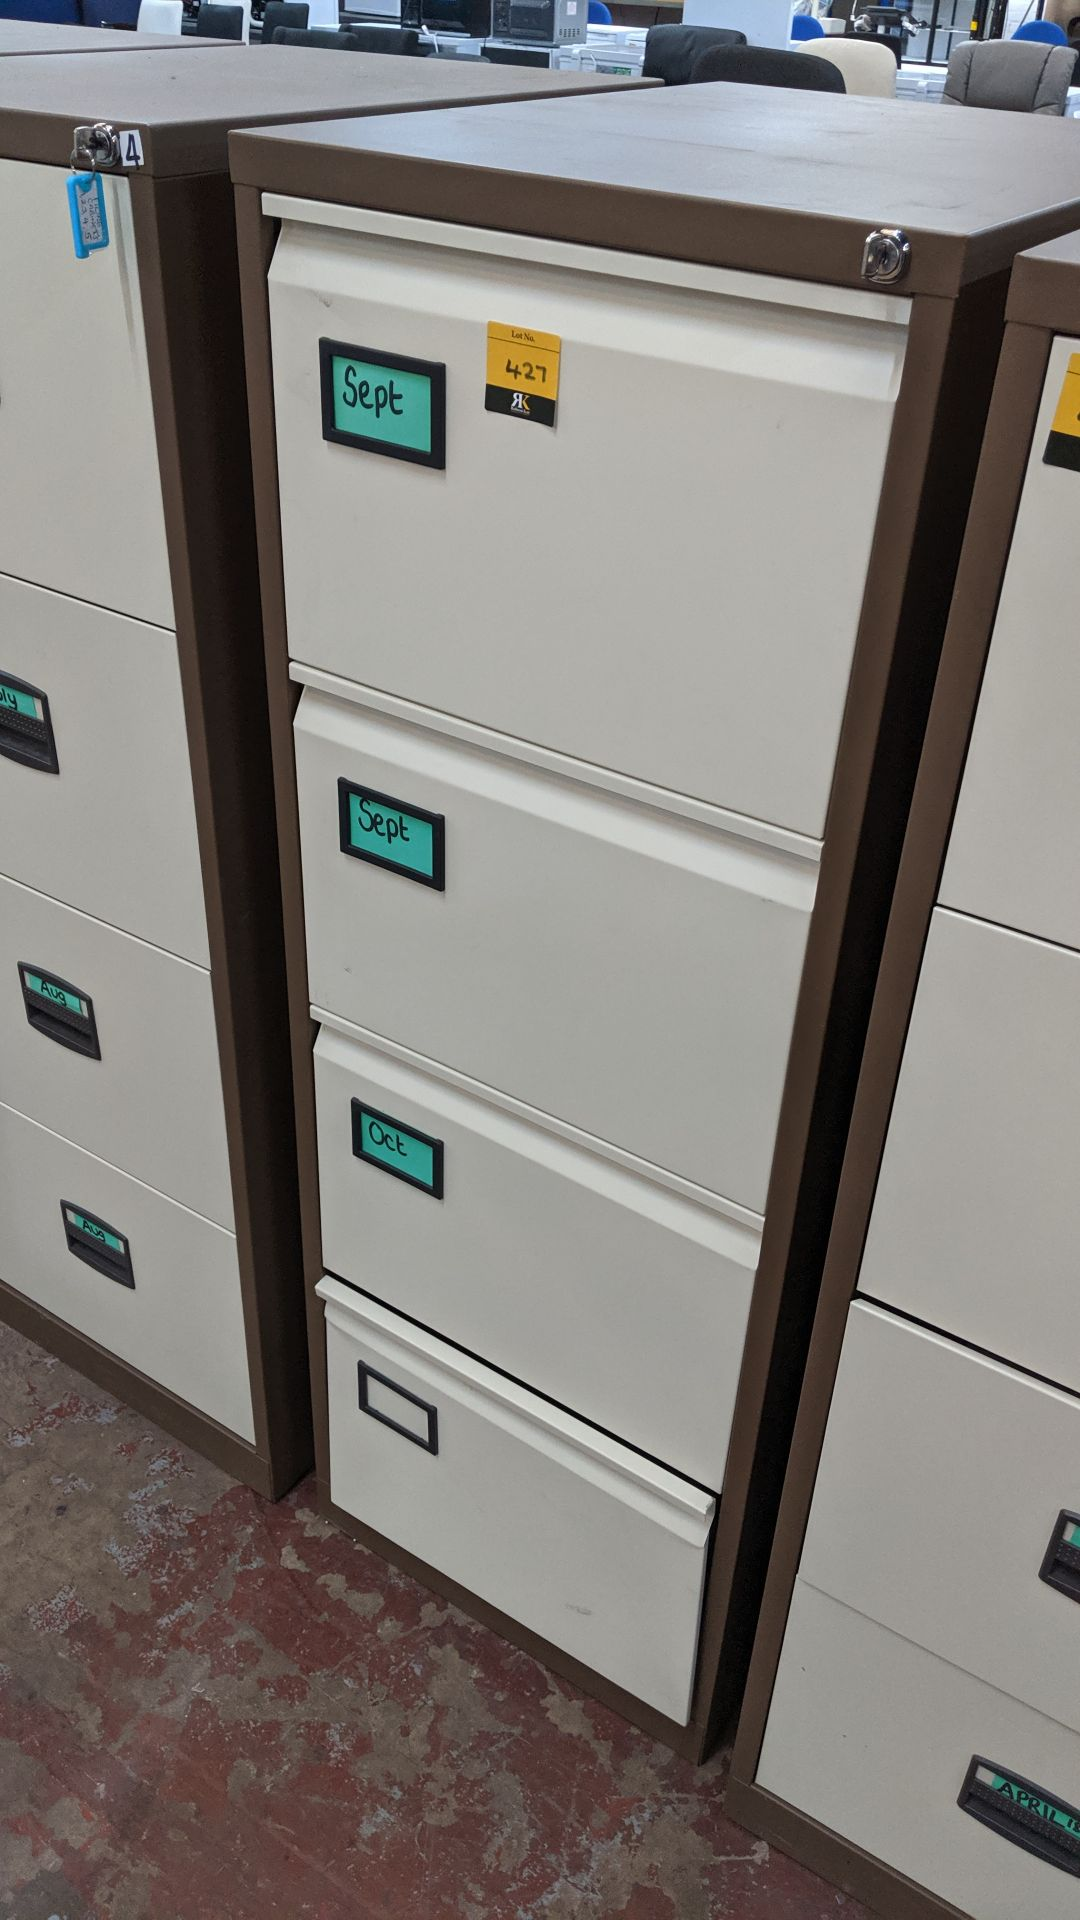 Lot 427 - Brown metal 4-drawer filing cabinet with key. This is one of a large number of lots used/owned by